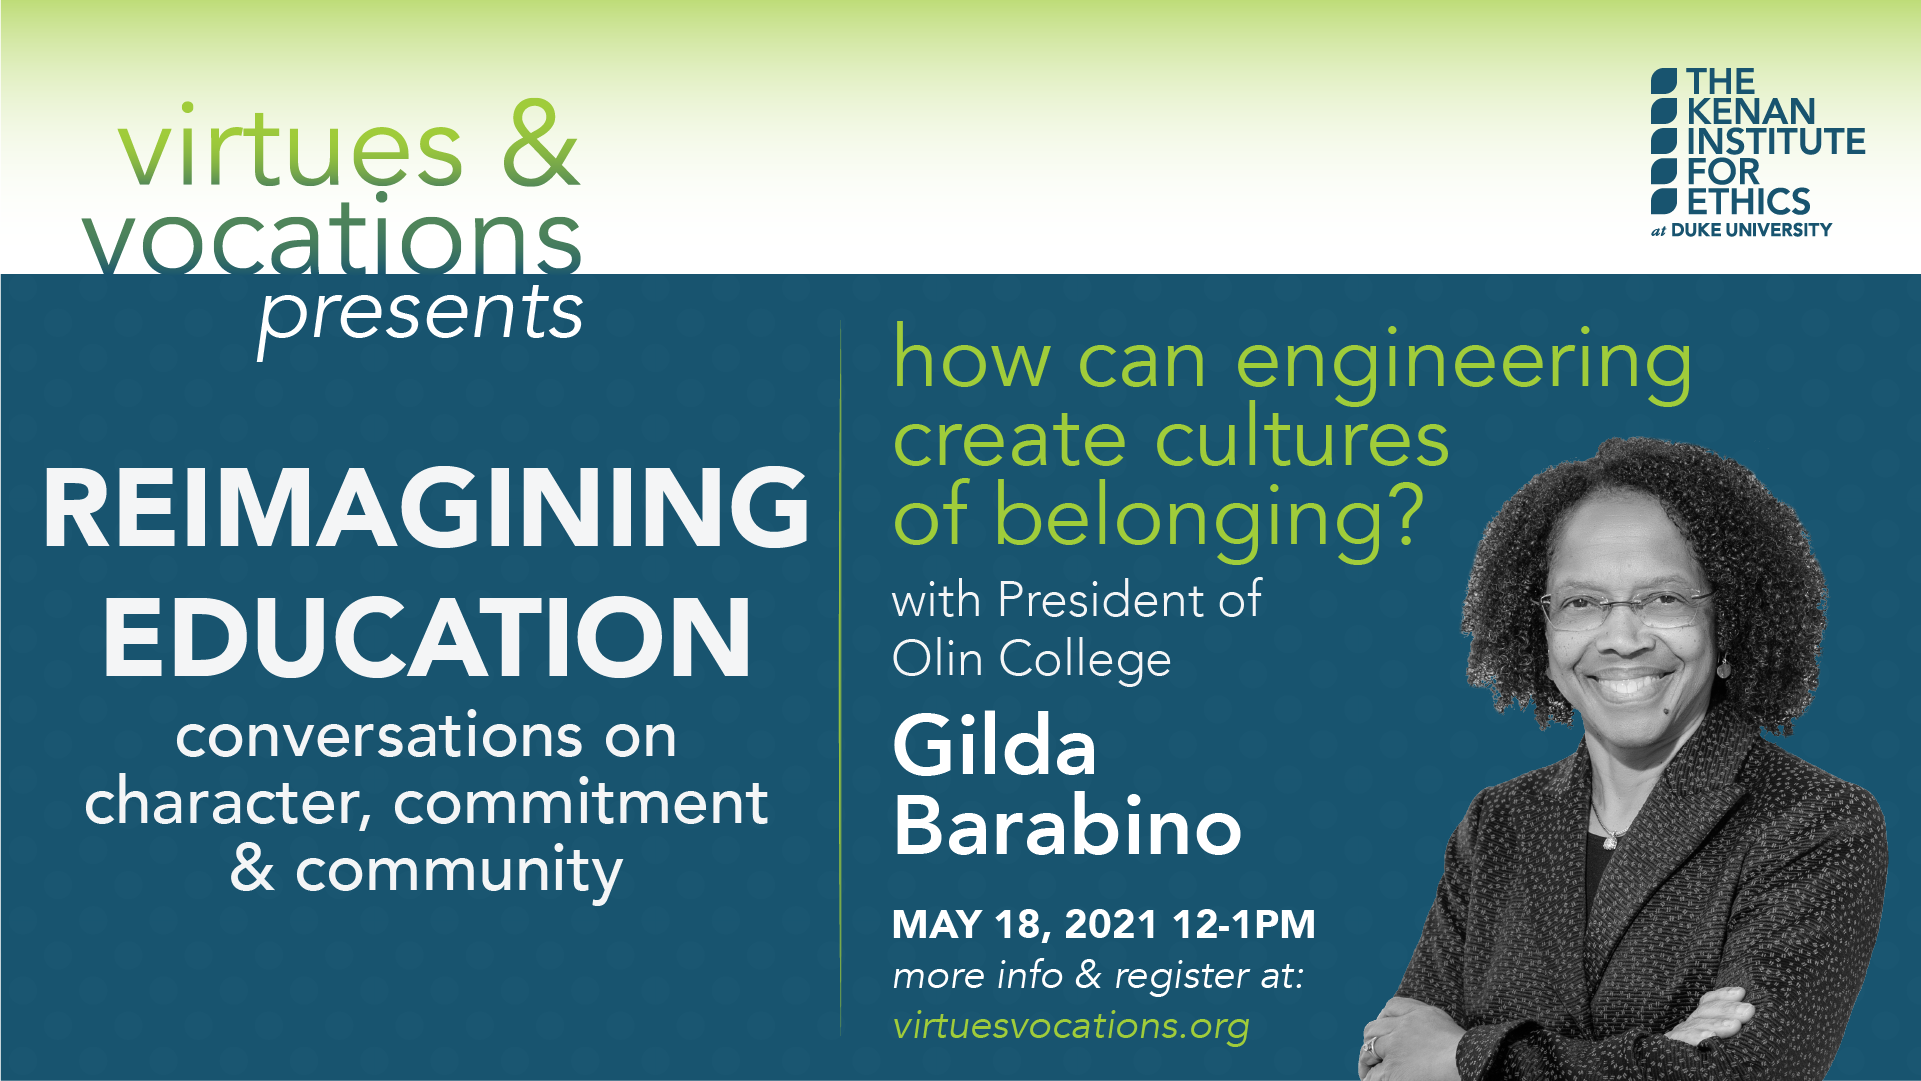 Gilda Barabino: How can engineering create cultures of belonging?